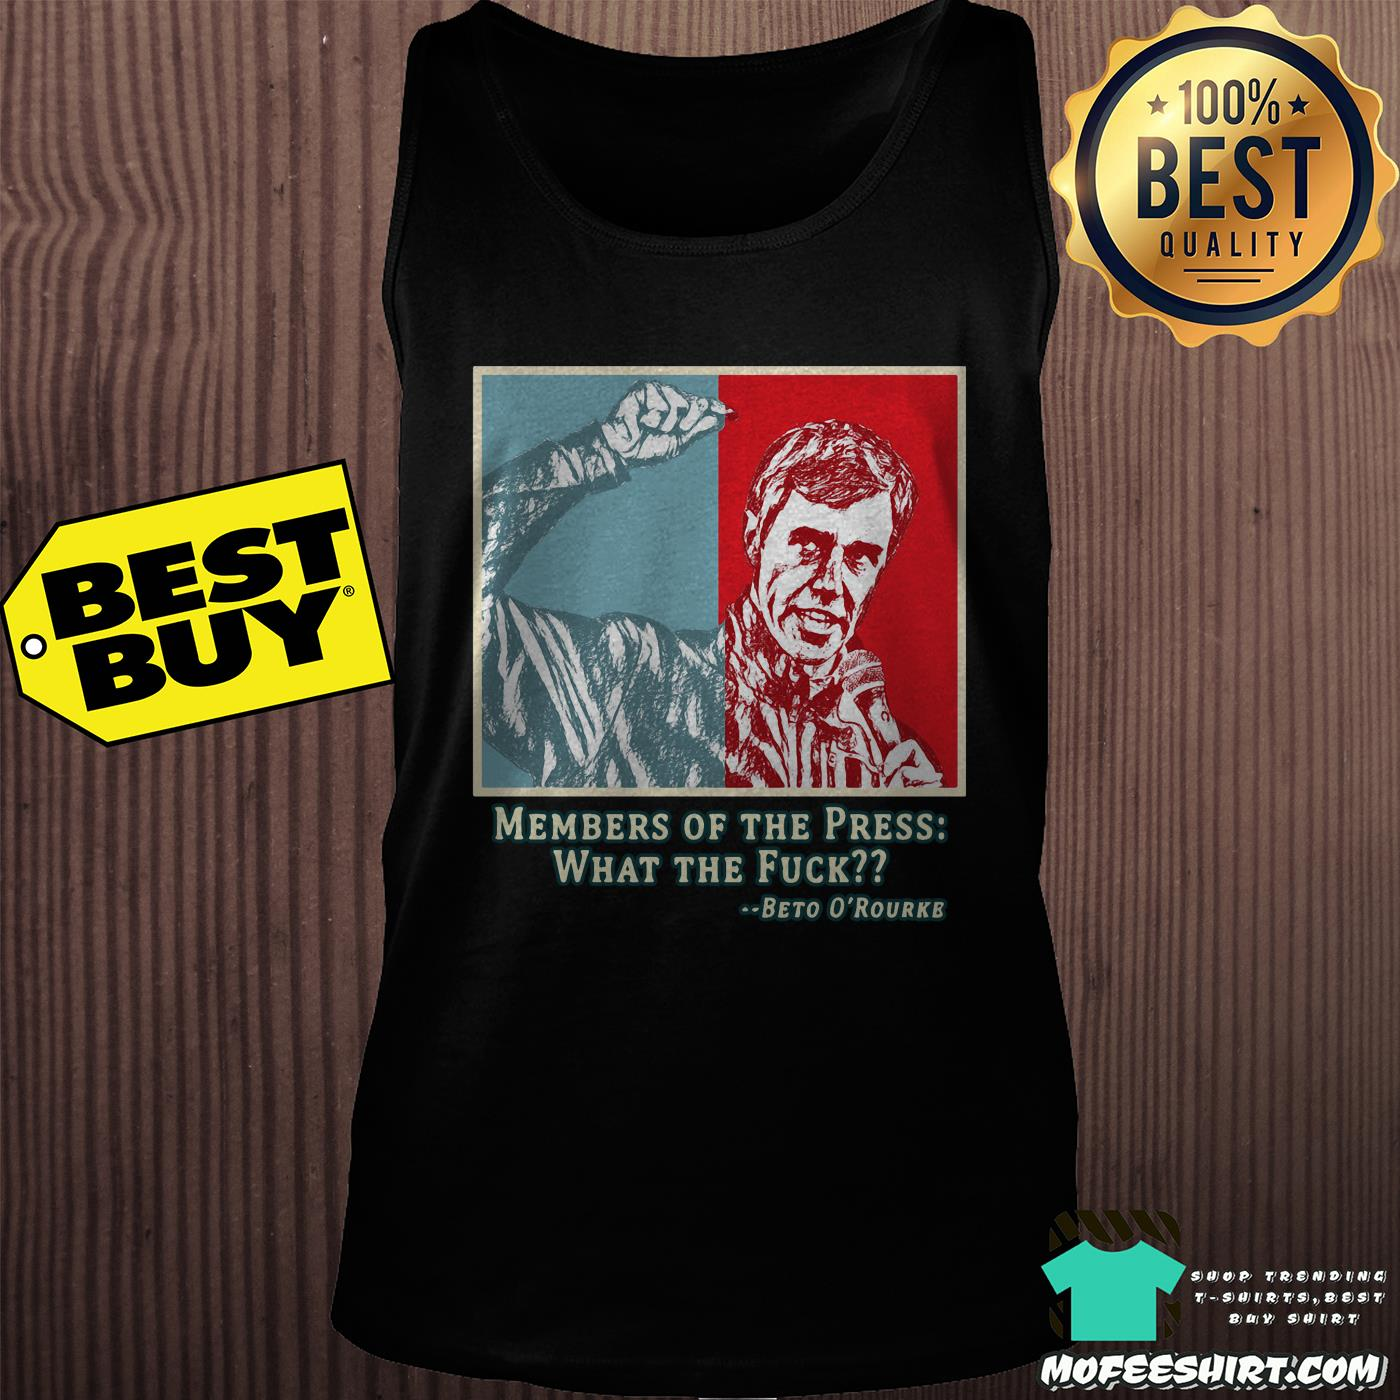 members of the press what the fuck beto orourke tank top - Members of the press what the fuck Beto O'Rourke shirt